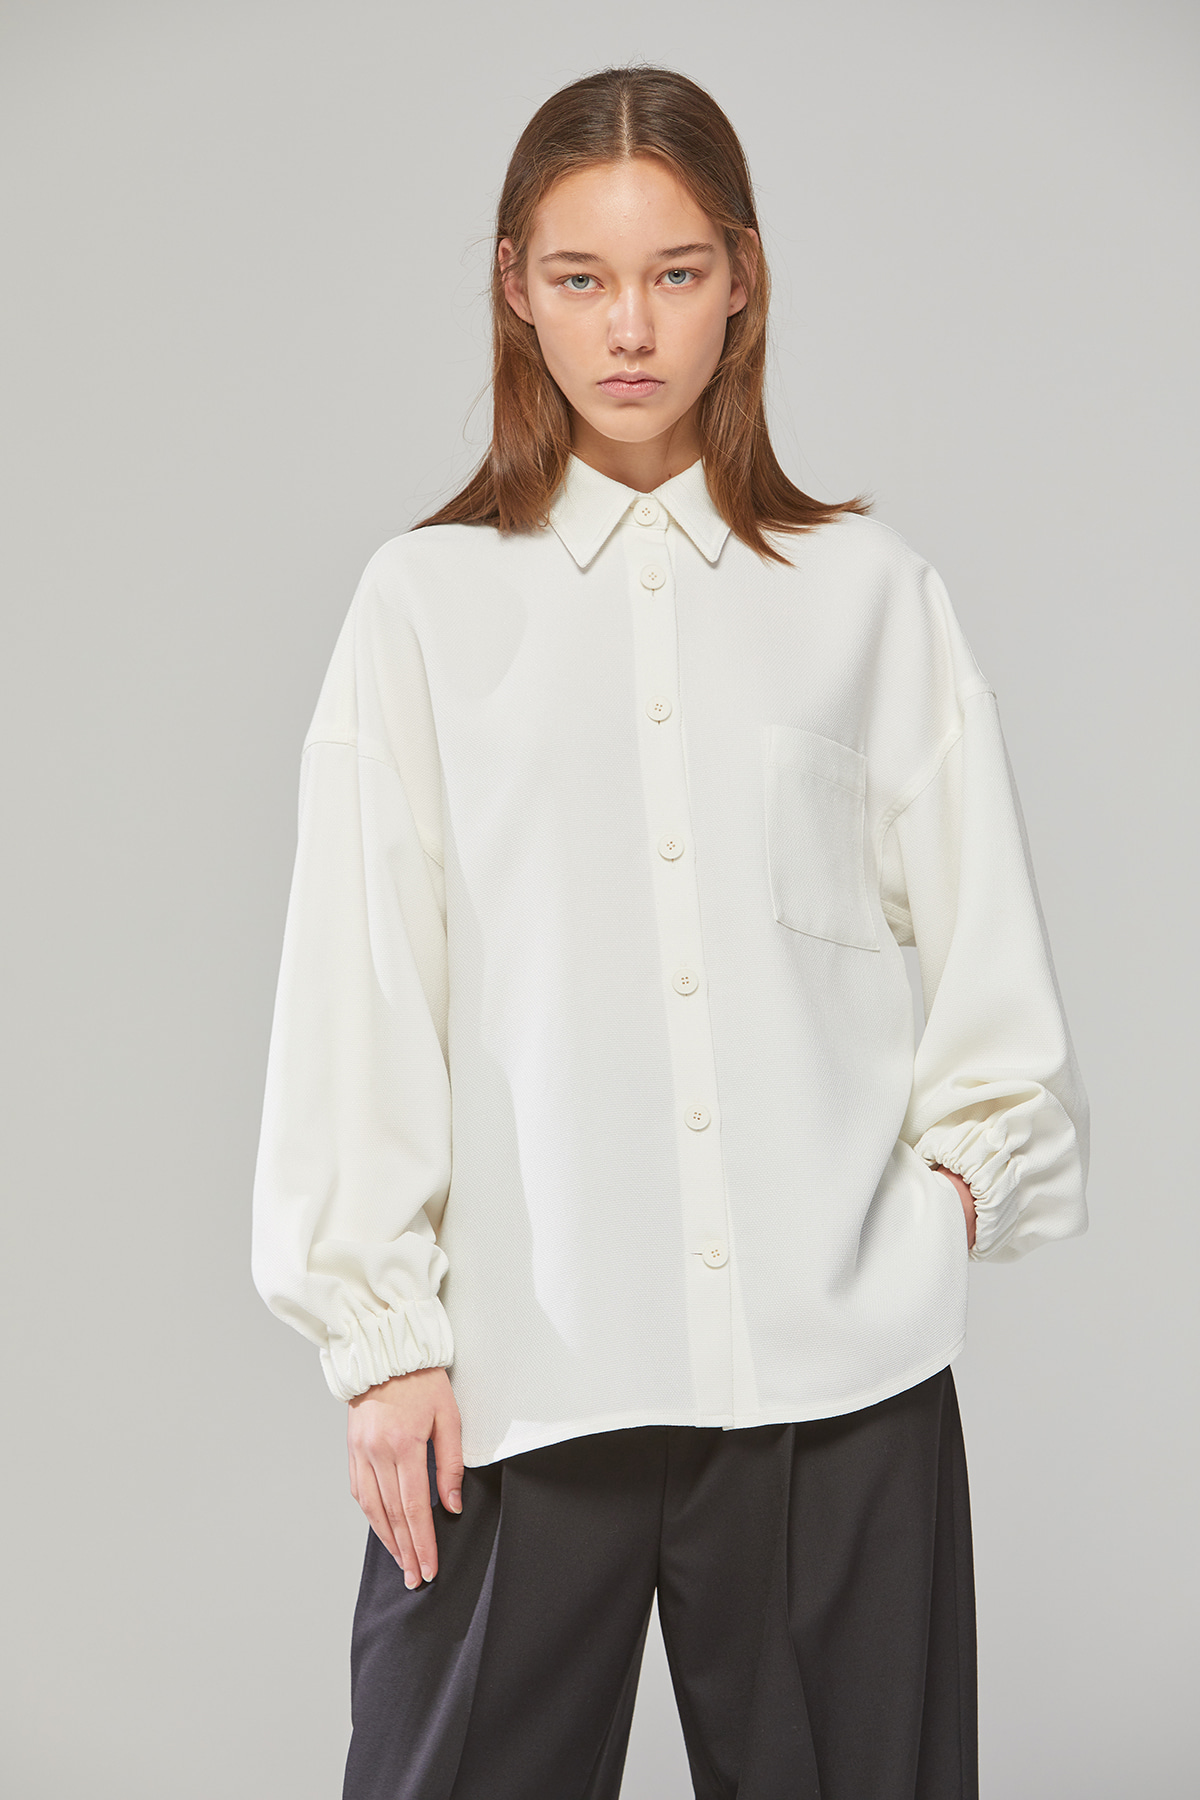 DEMERE BANDING SLEEVE SHIRT (IVORY)